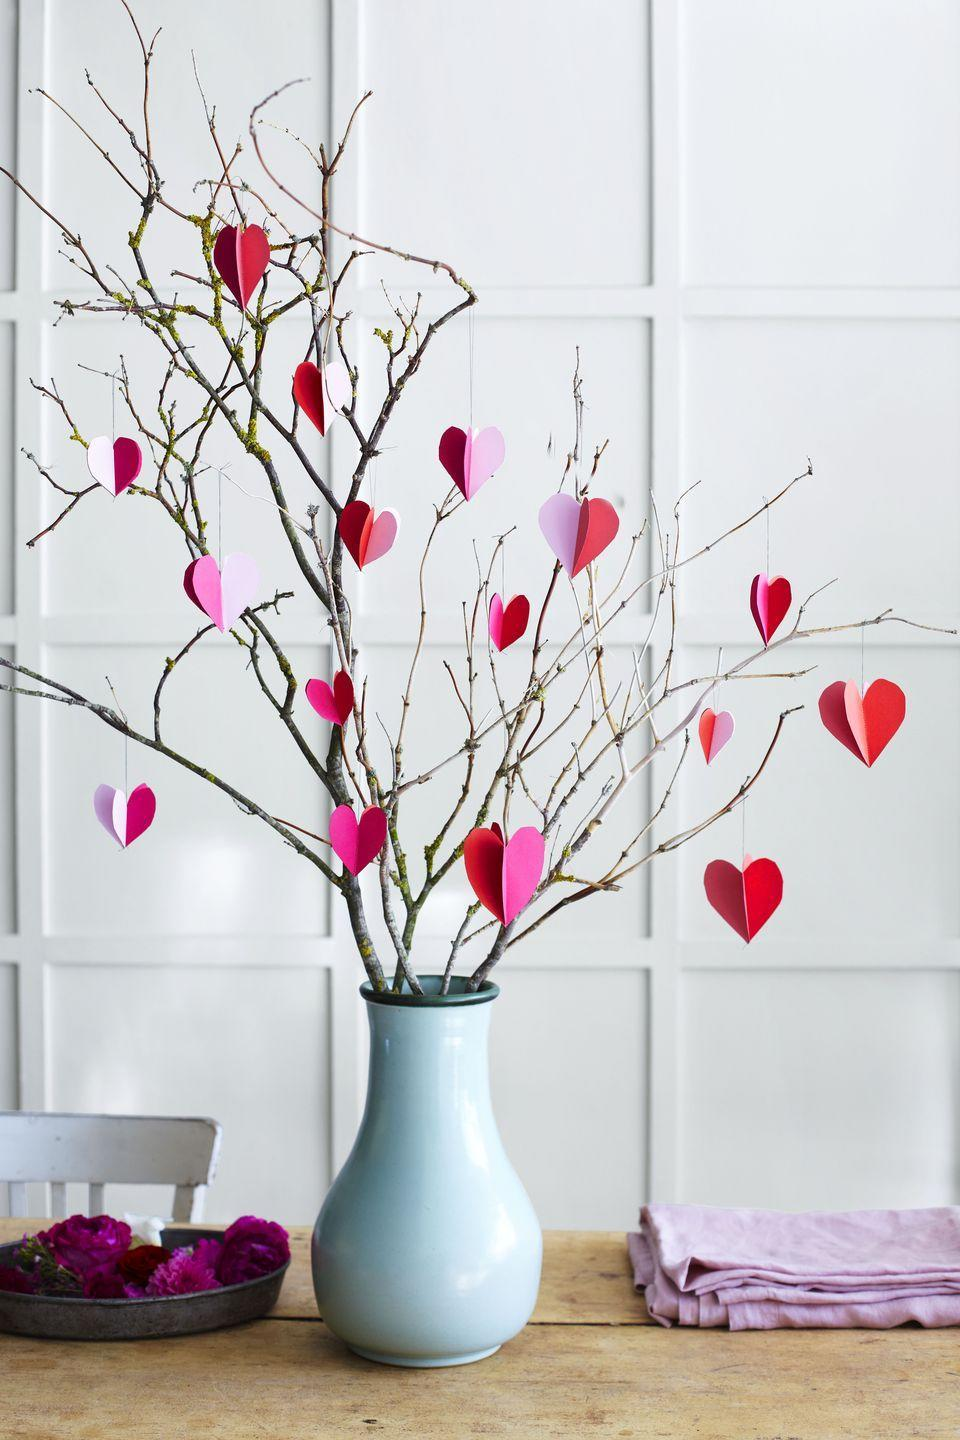 <p>Fill a vase with backyard branches, and hang individual paper ornaments made from card stock and thread to create a beautiful centerpiece for Mom on Mother's Day. Bonus: Write sweet reasons you love her on the hearts!<br></p>